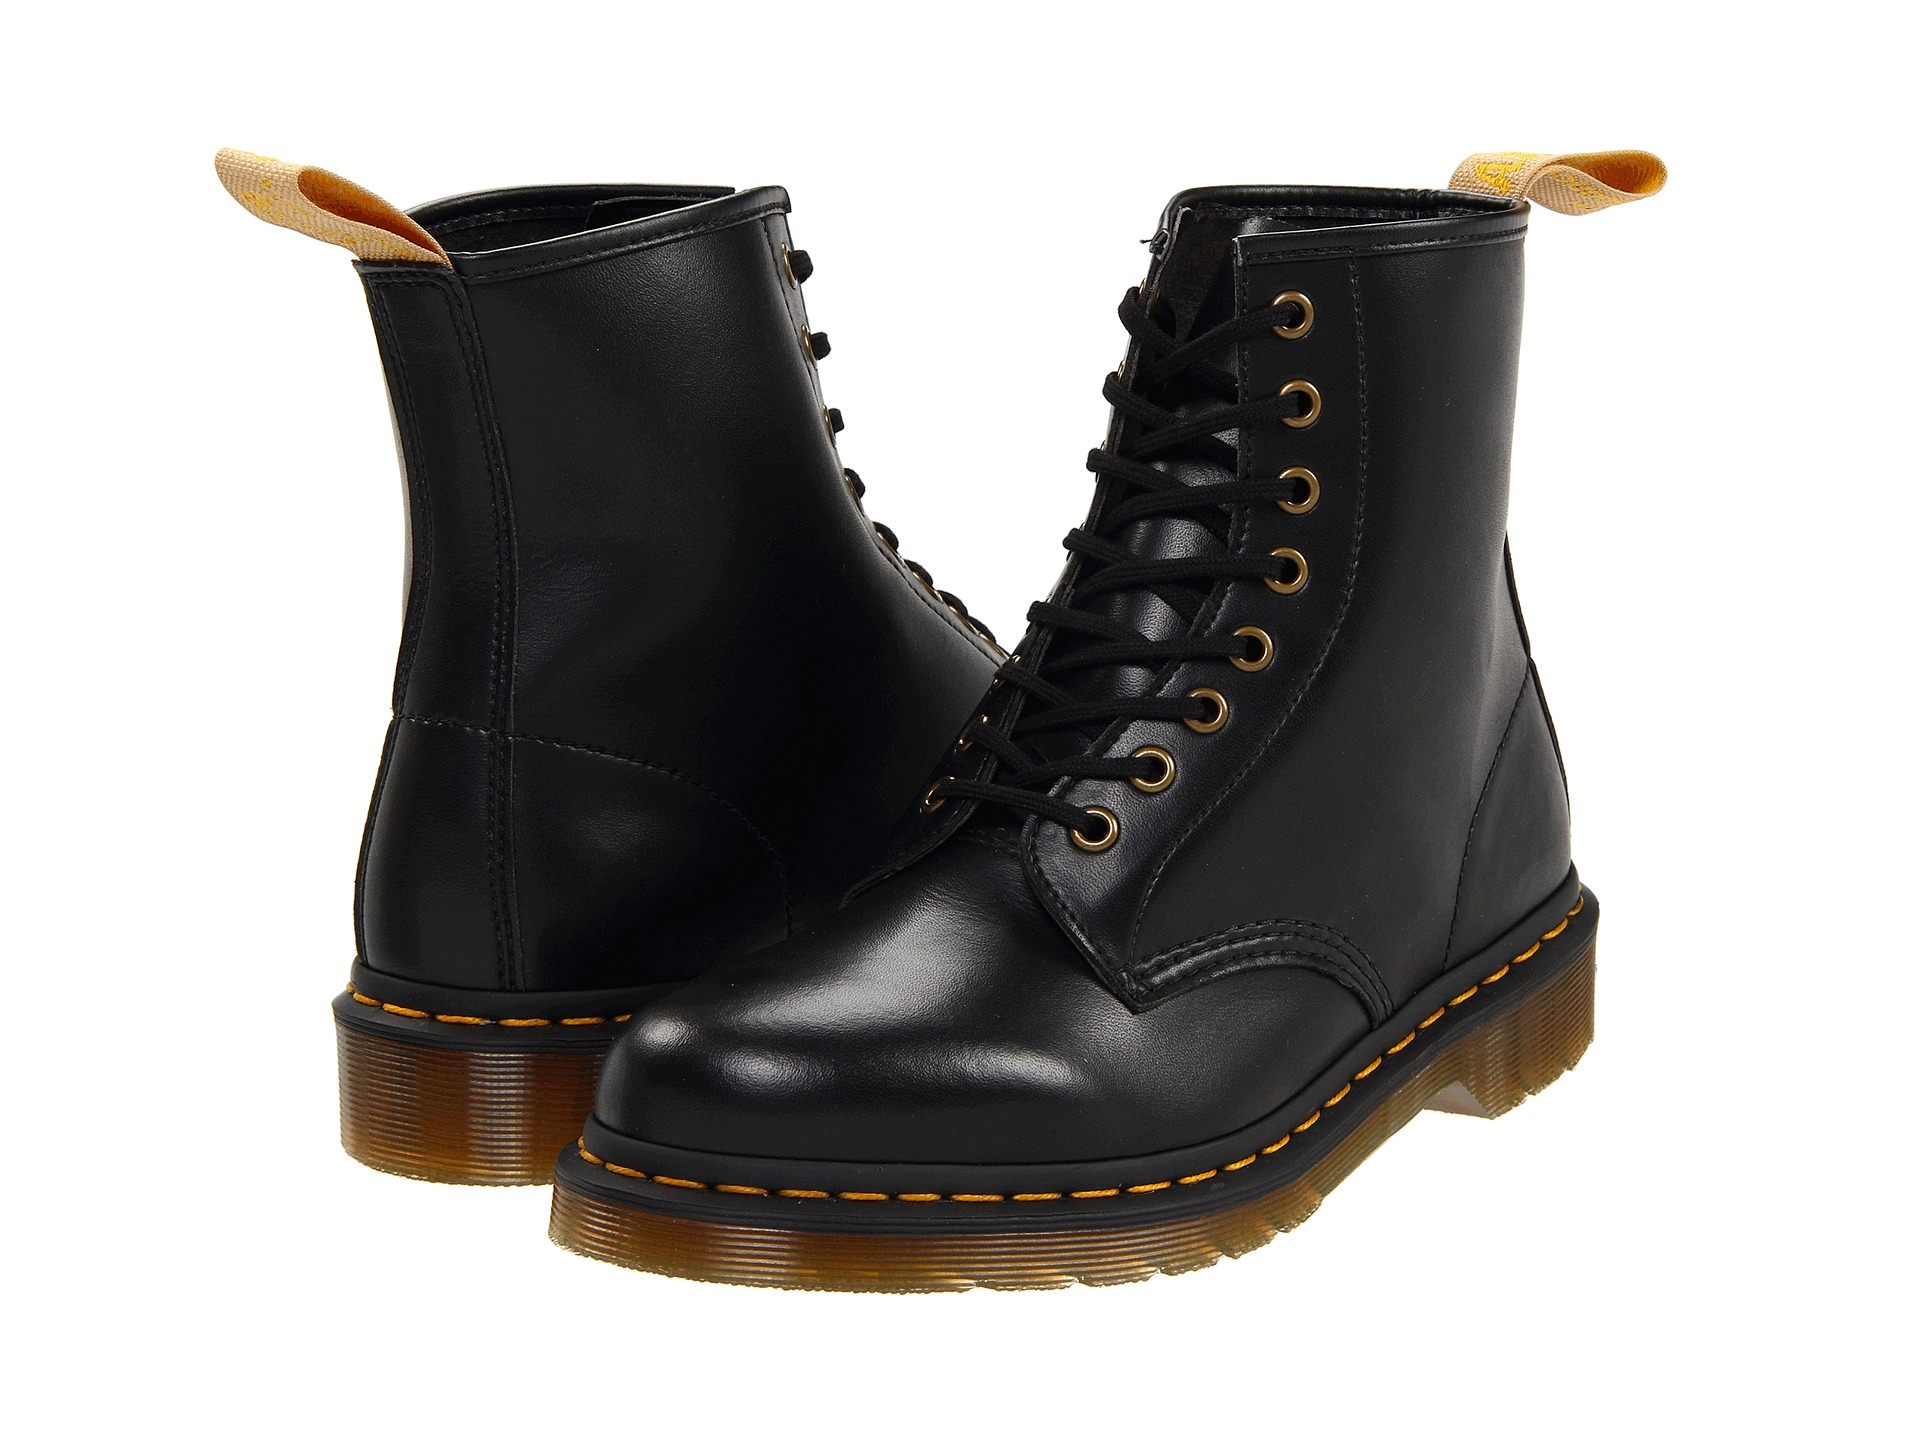 Doc Martin Boots Free Shipping shoes for cheap jordans fa93f62be